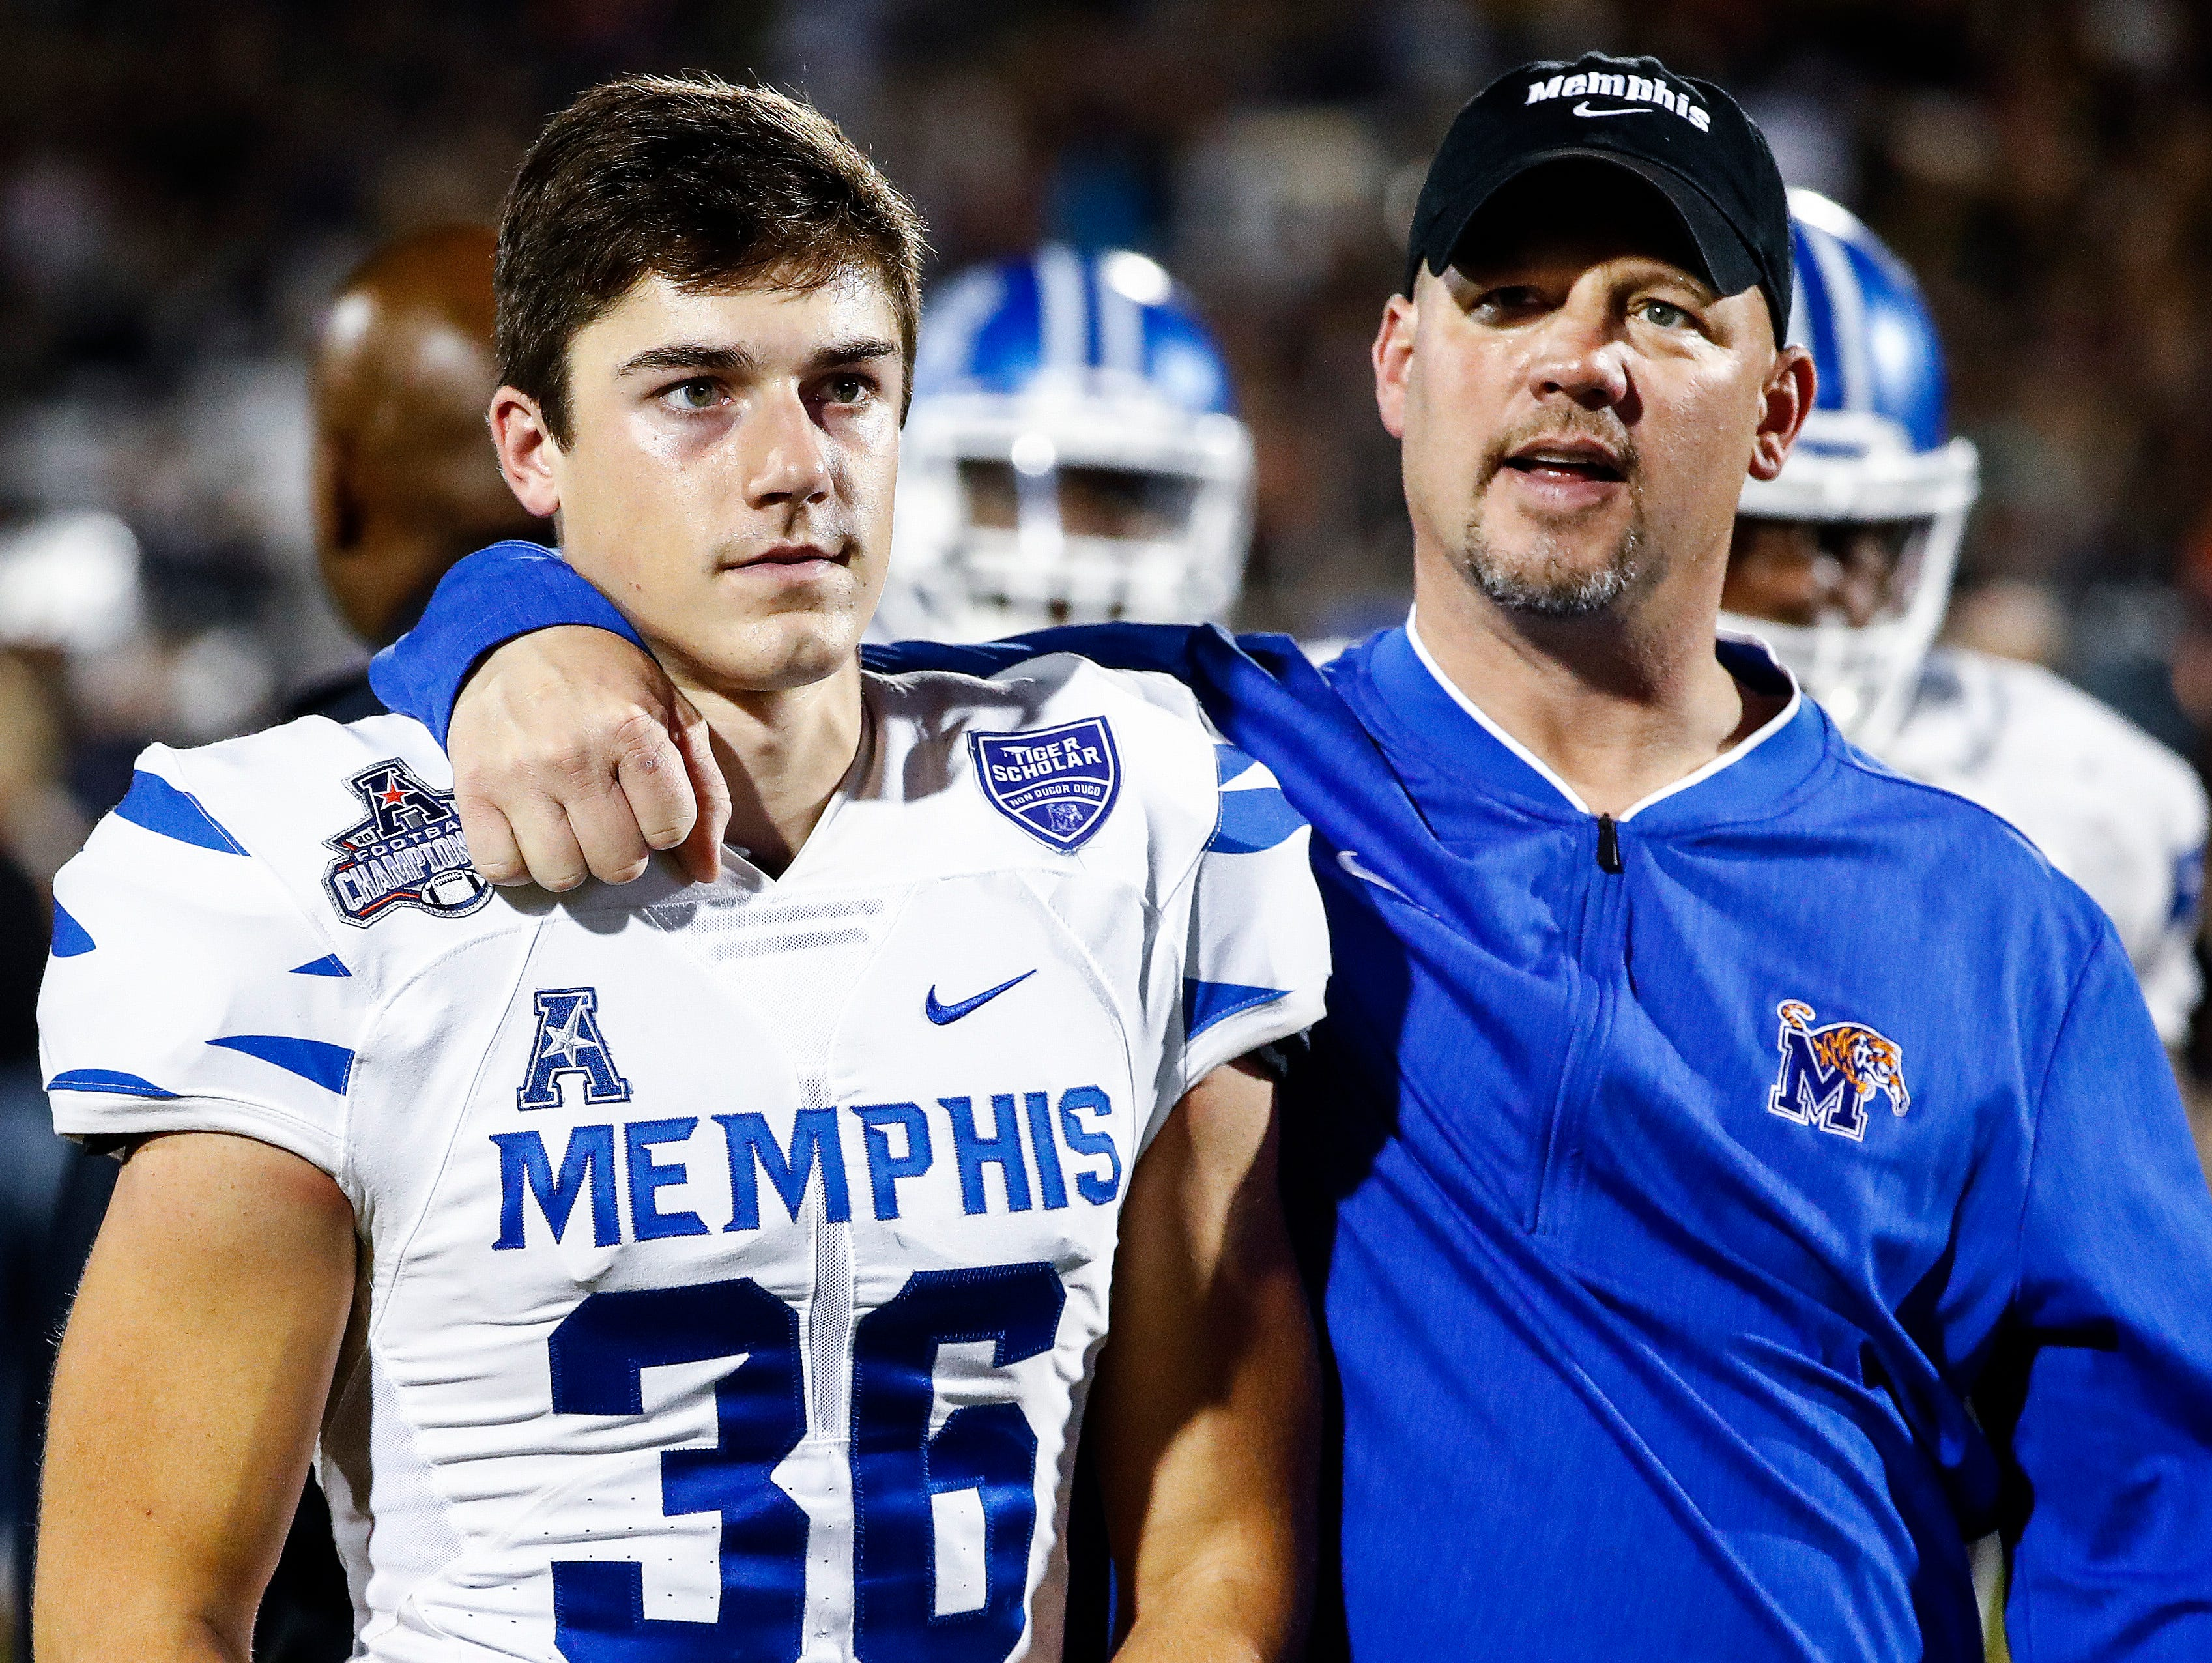 Memphis kicker Riley Patterson (left) and special teams coach Joe Lorig (right) walk off the field after falling to UCF 56-41 in the AAC Championship Football game Saturday, December 1, 2018 in Orlando.